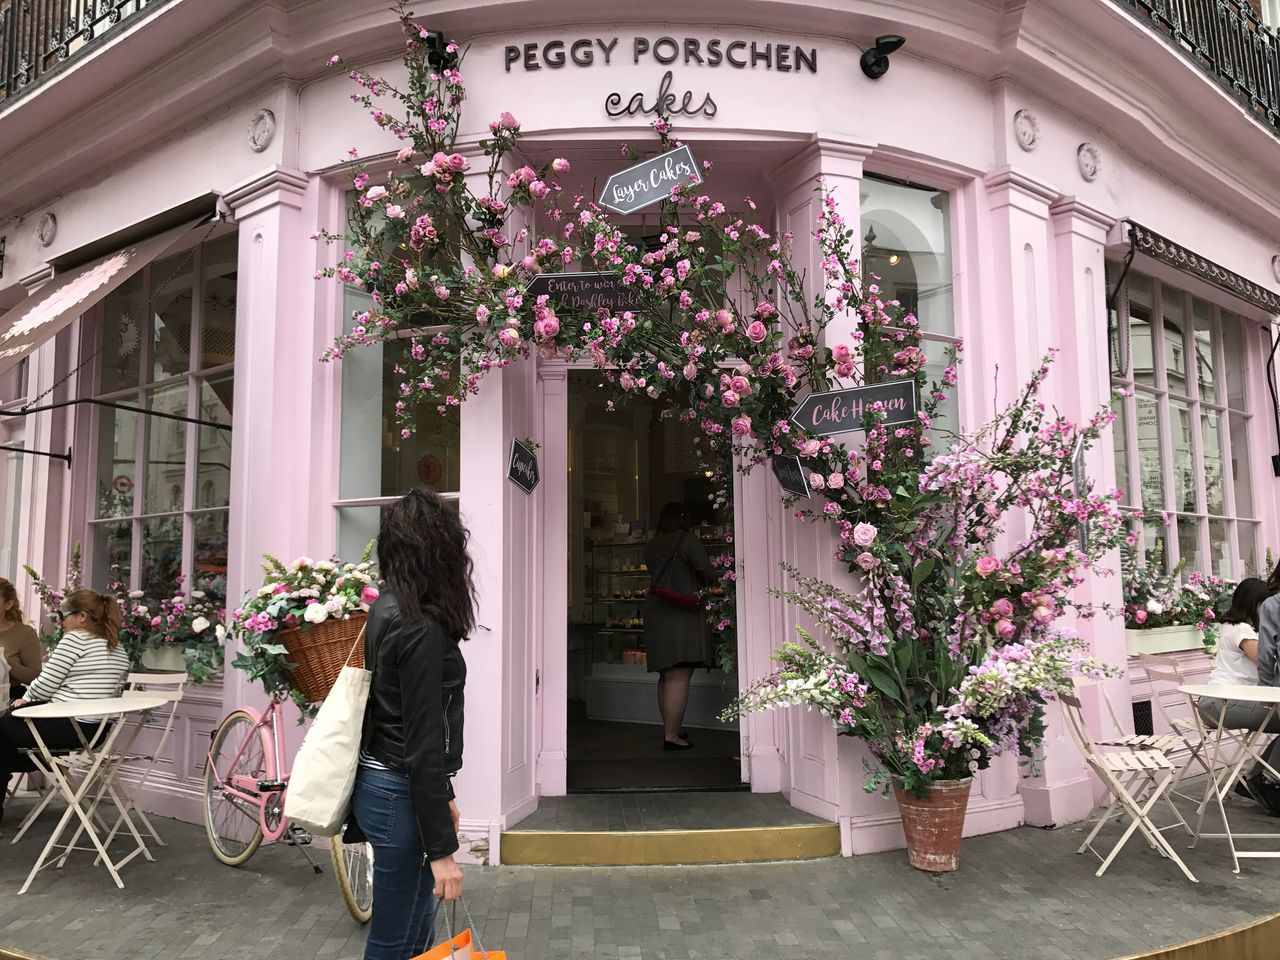 EyeEm LOST IN London One of the many charming shops in London. Came across more than I could remember during my walks and this one definitely had one of the most gorgeous fronts... Peggy Porschen Chelsea Sloane Square London Streetphotography Ebury Street Flower Cake Shop